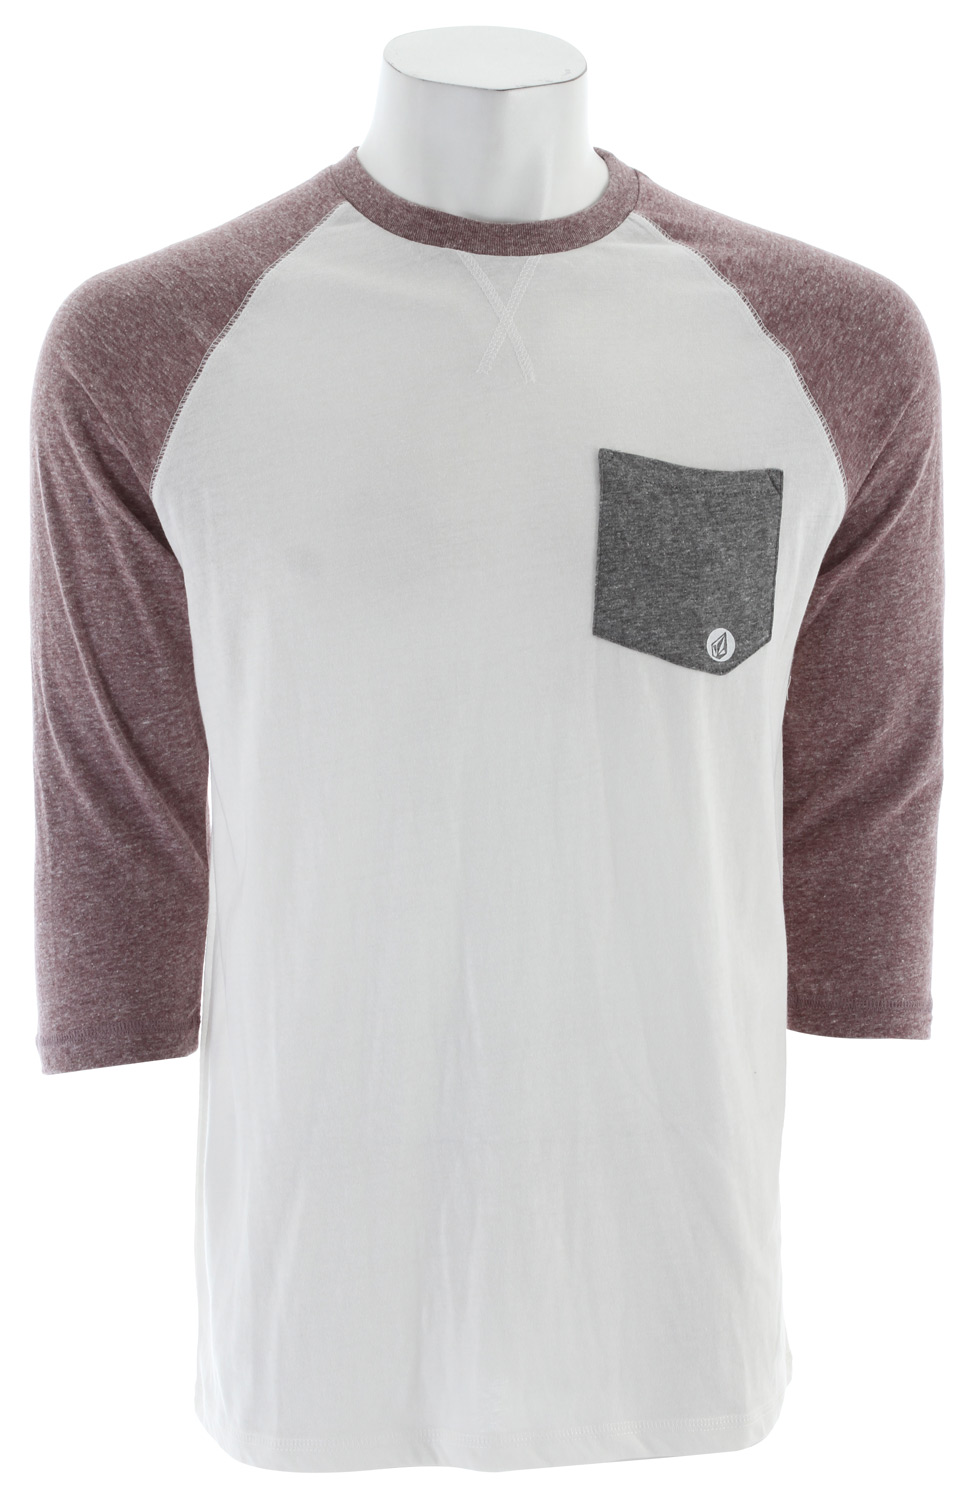 Surf Key Features of The Volcom Base Line 3/4 Sleeve Raglan Off White: Slim Fit Crew Neck Raglan 3/4 sleeve Contrast pocket & sleeves 65% recycled cotton/35% polyester - $24.95